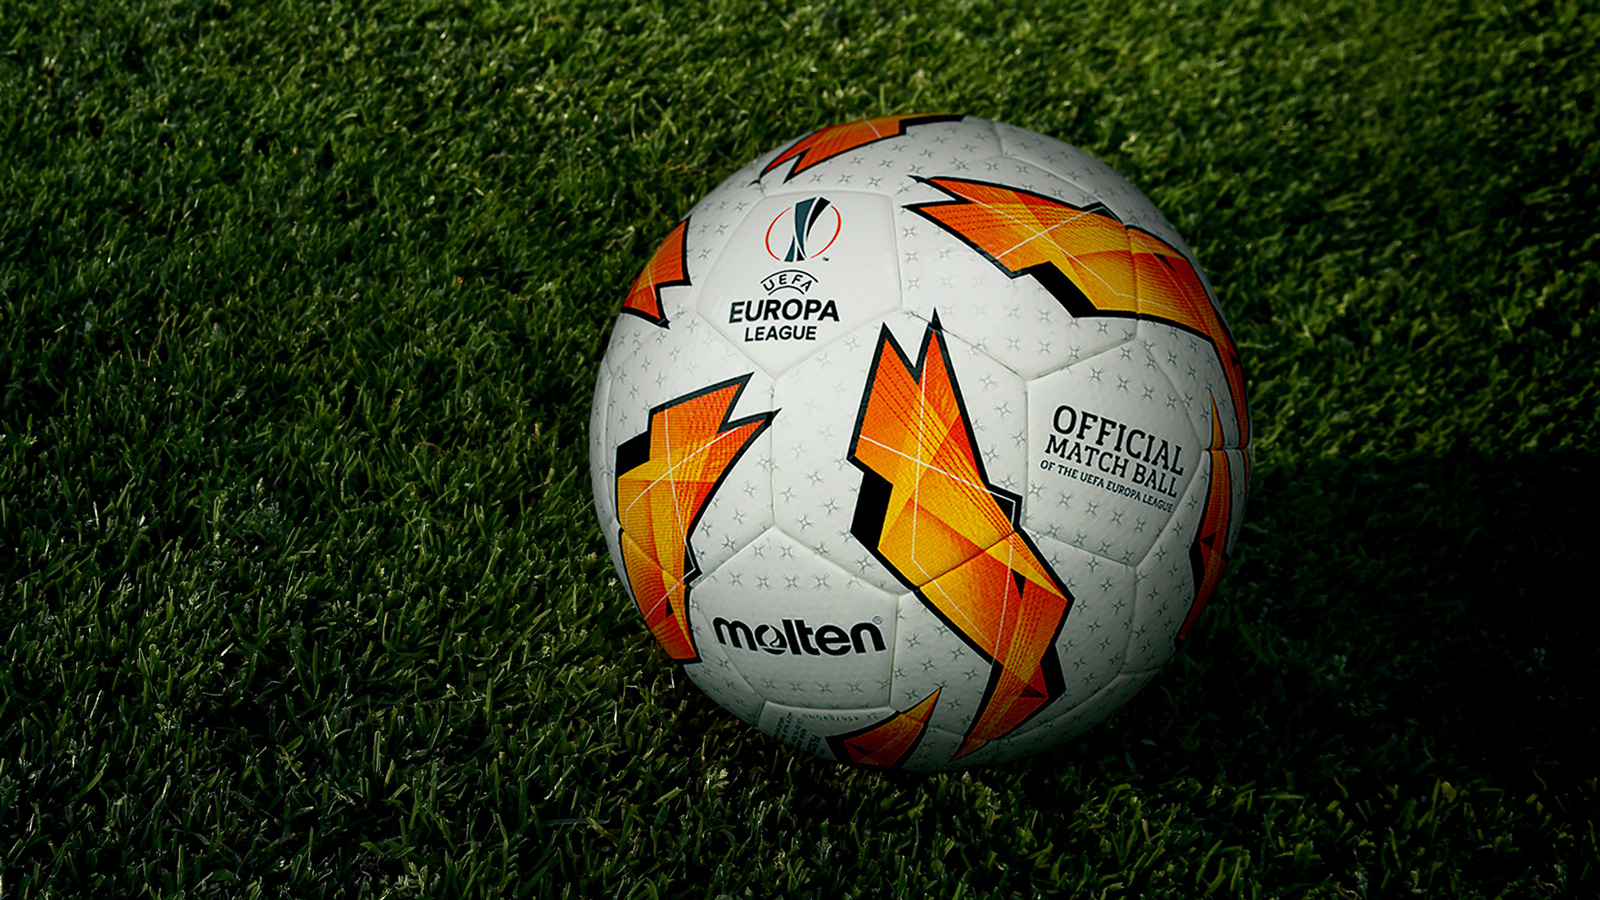 New 'Edgier' UEFA Europa League Branding Revealed - Footy ...